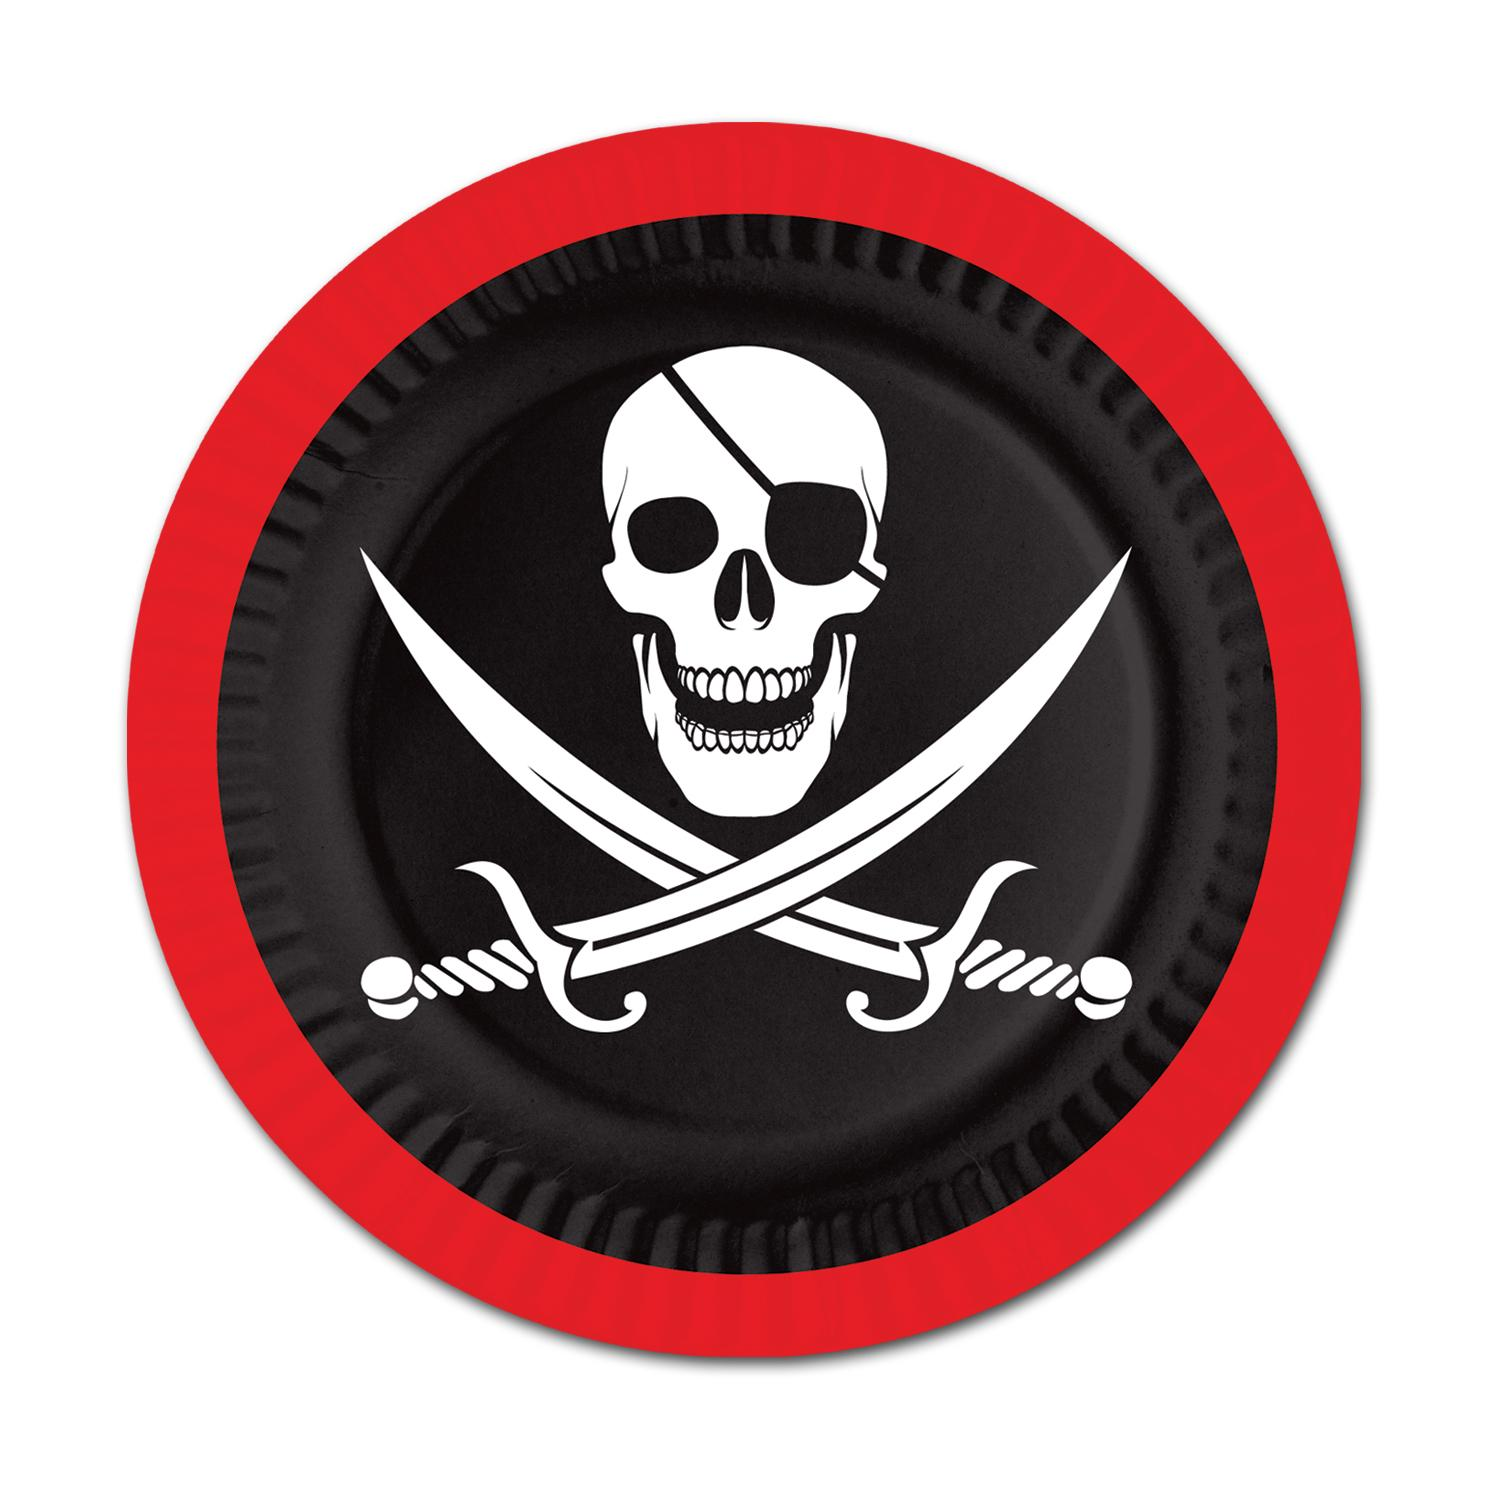 Pack of 96 Disposable Red and Black Pirate Decorative Des...